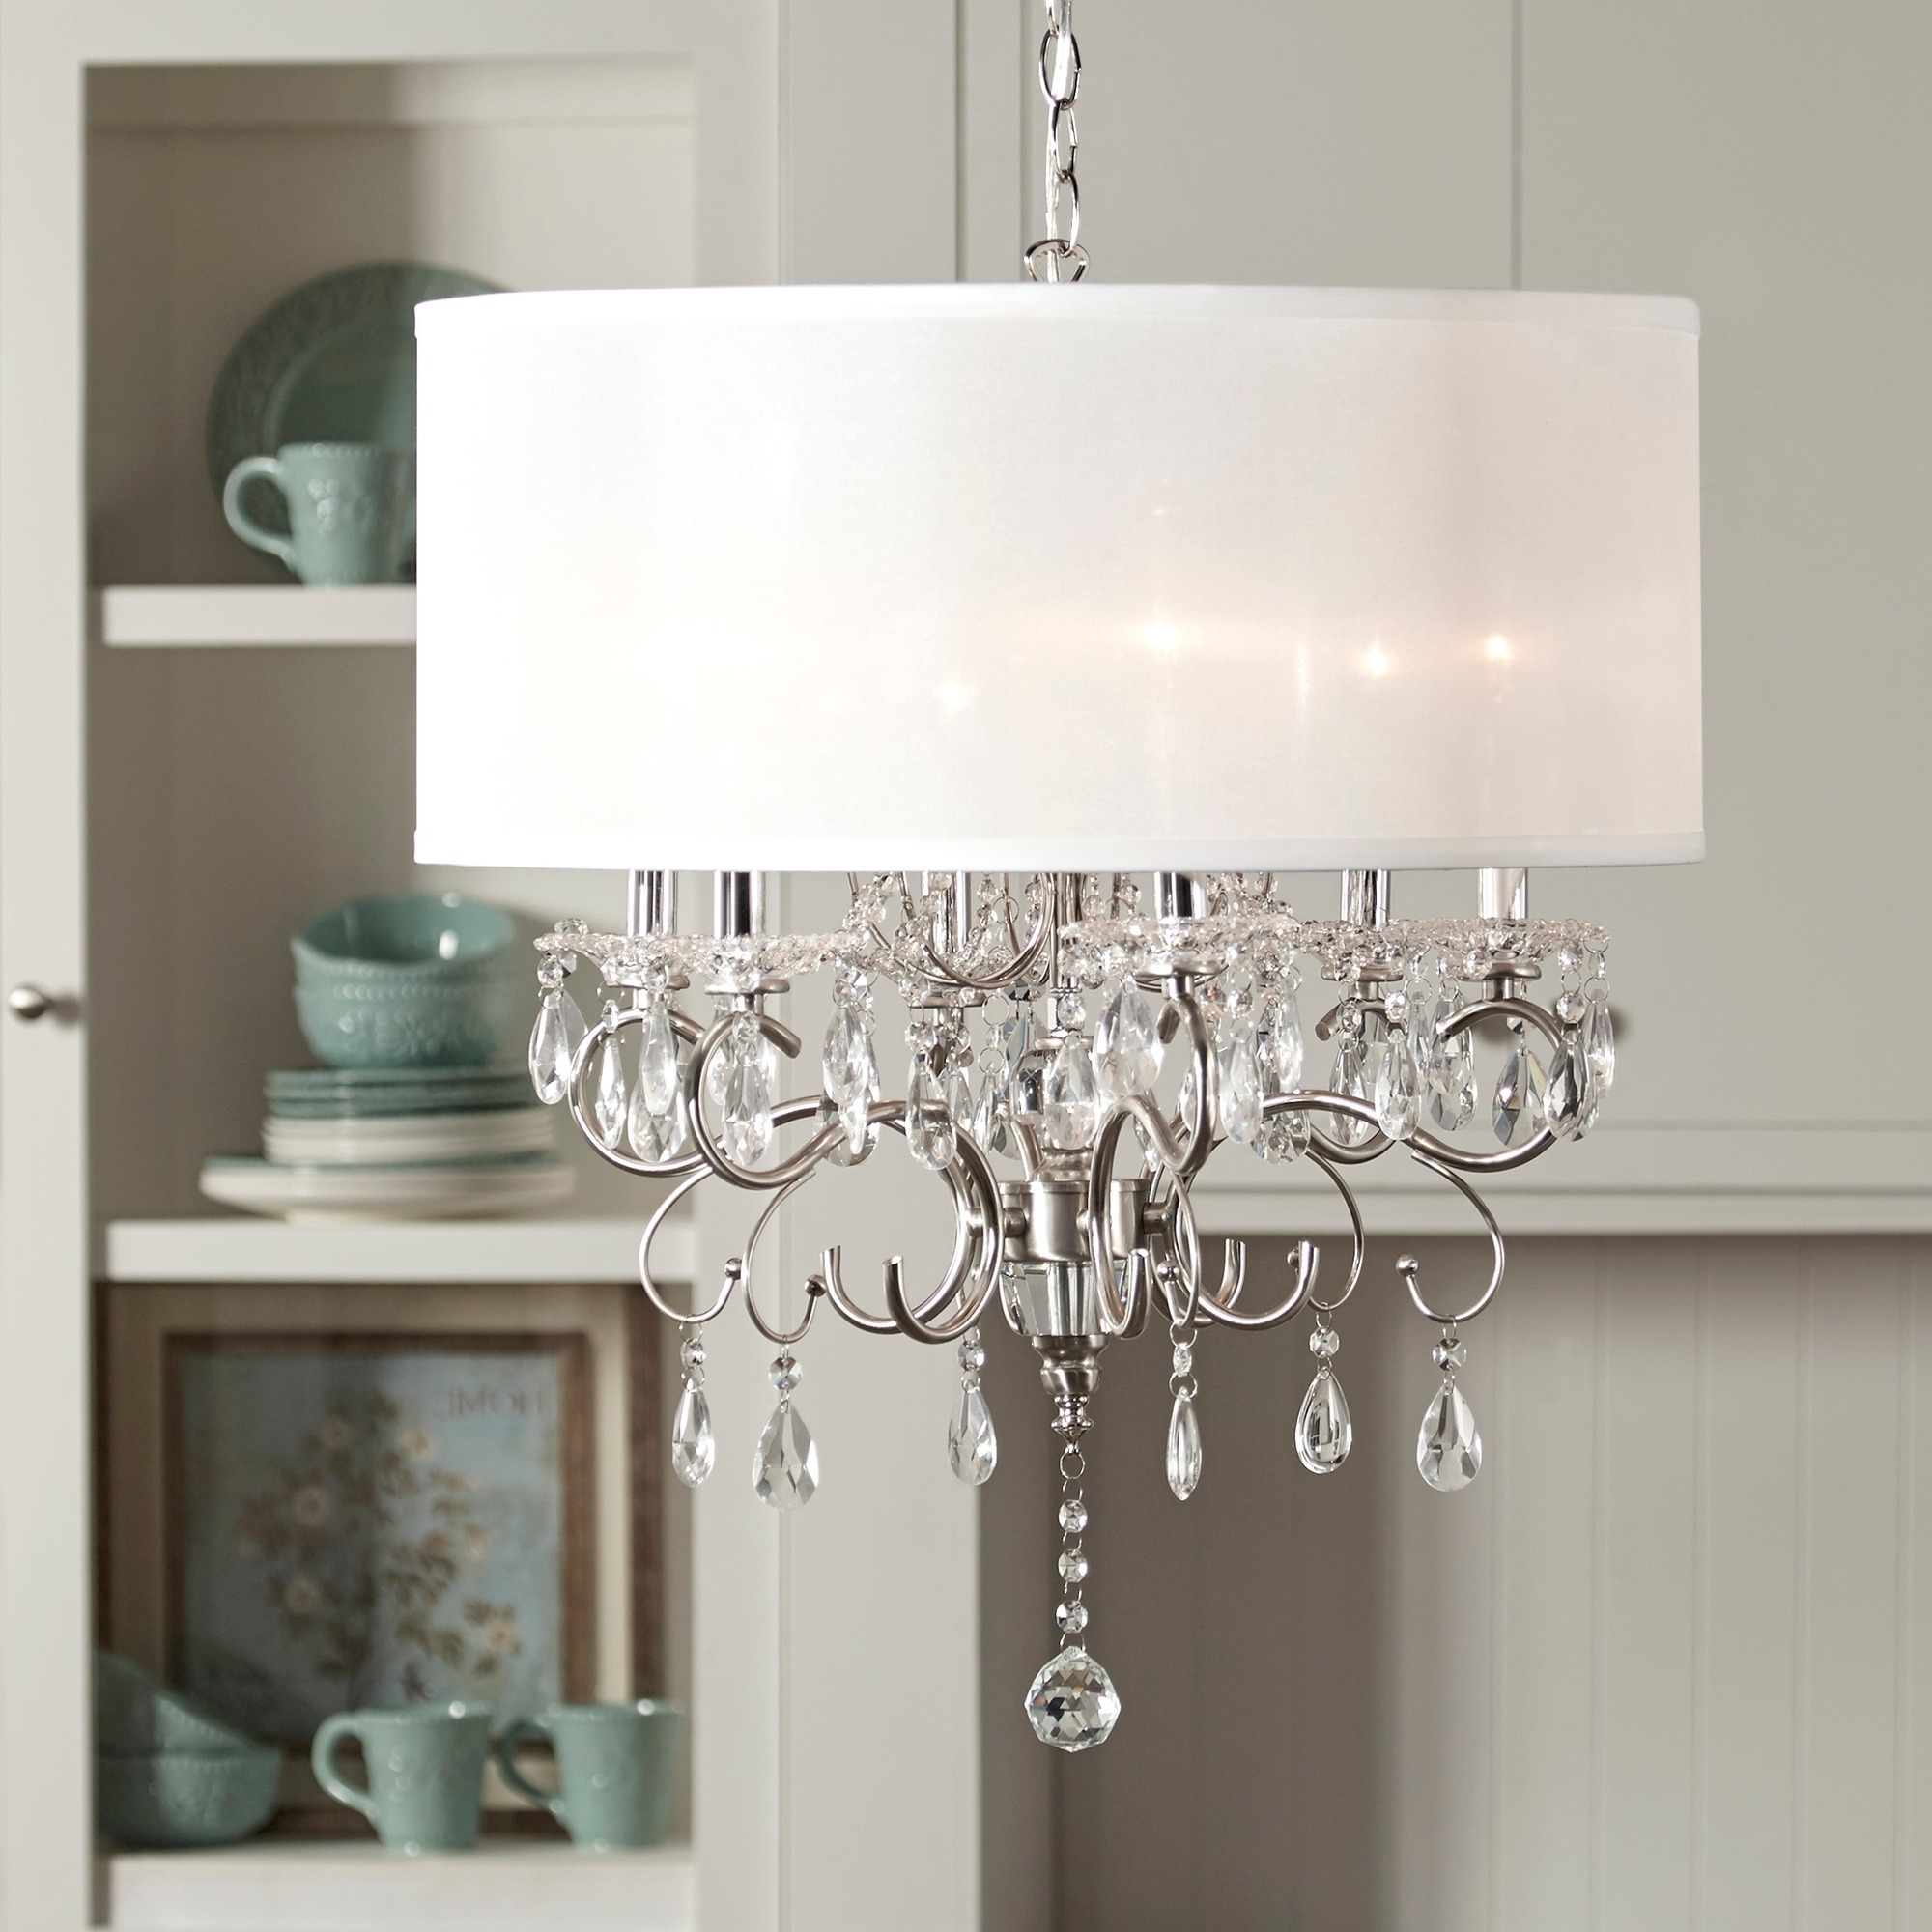 Widely Used Excellent Light Shades Of Grey Html Purple Names Shade Blue With Lampshade Chandeliers (View 9 of 20)